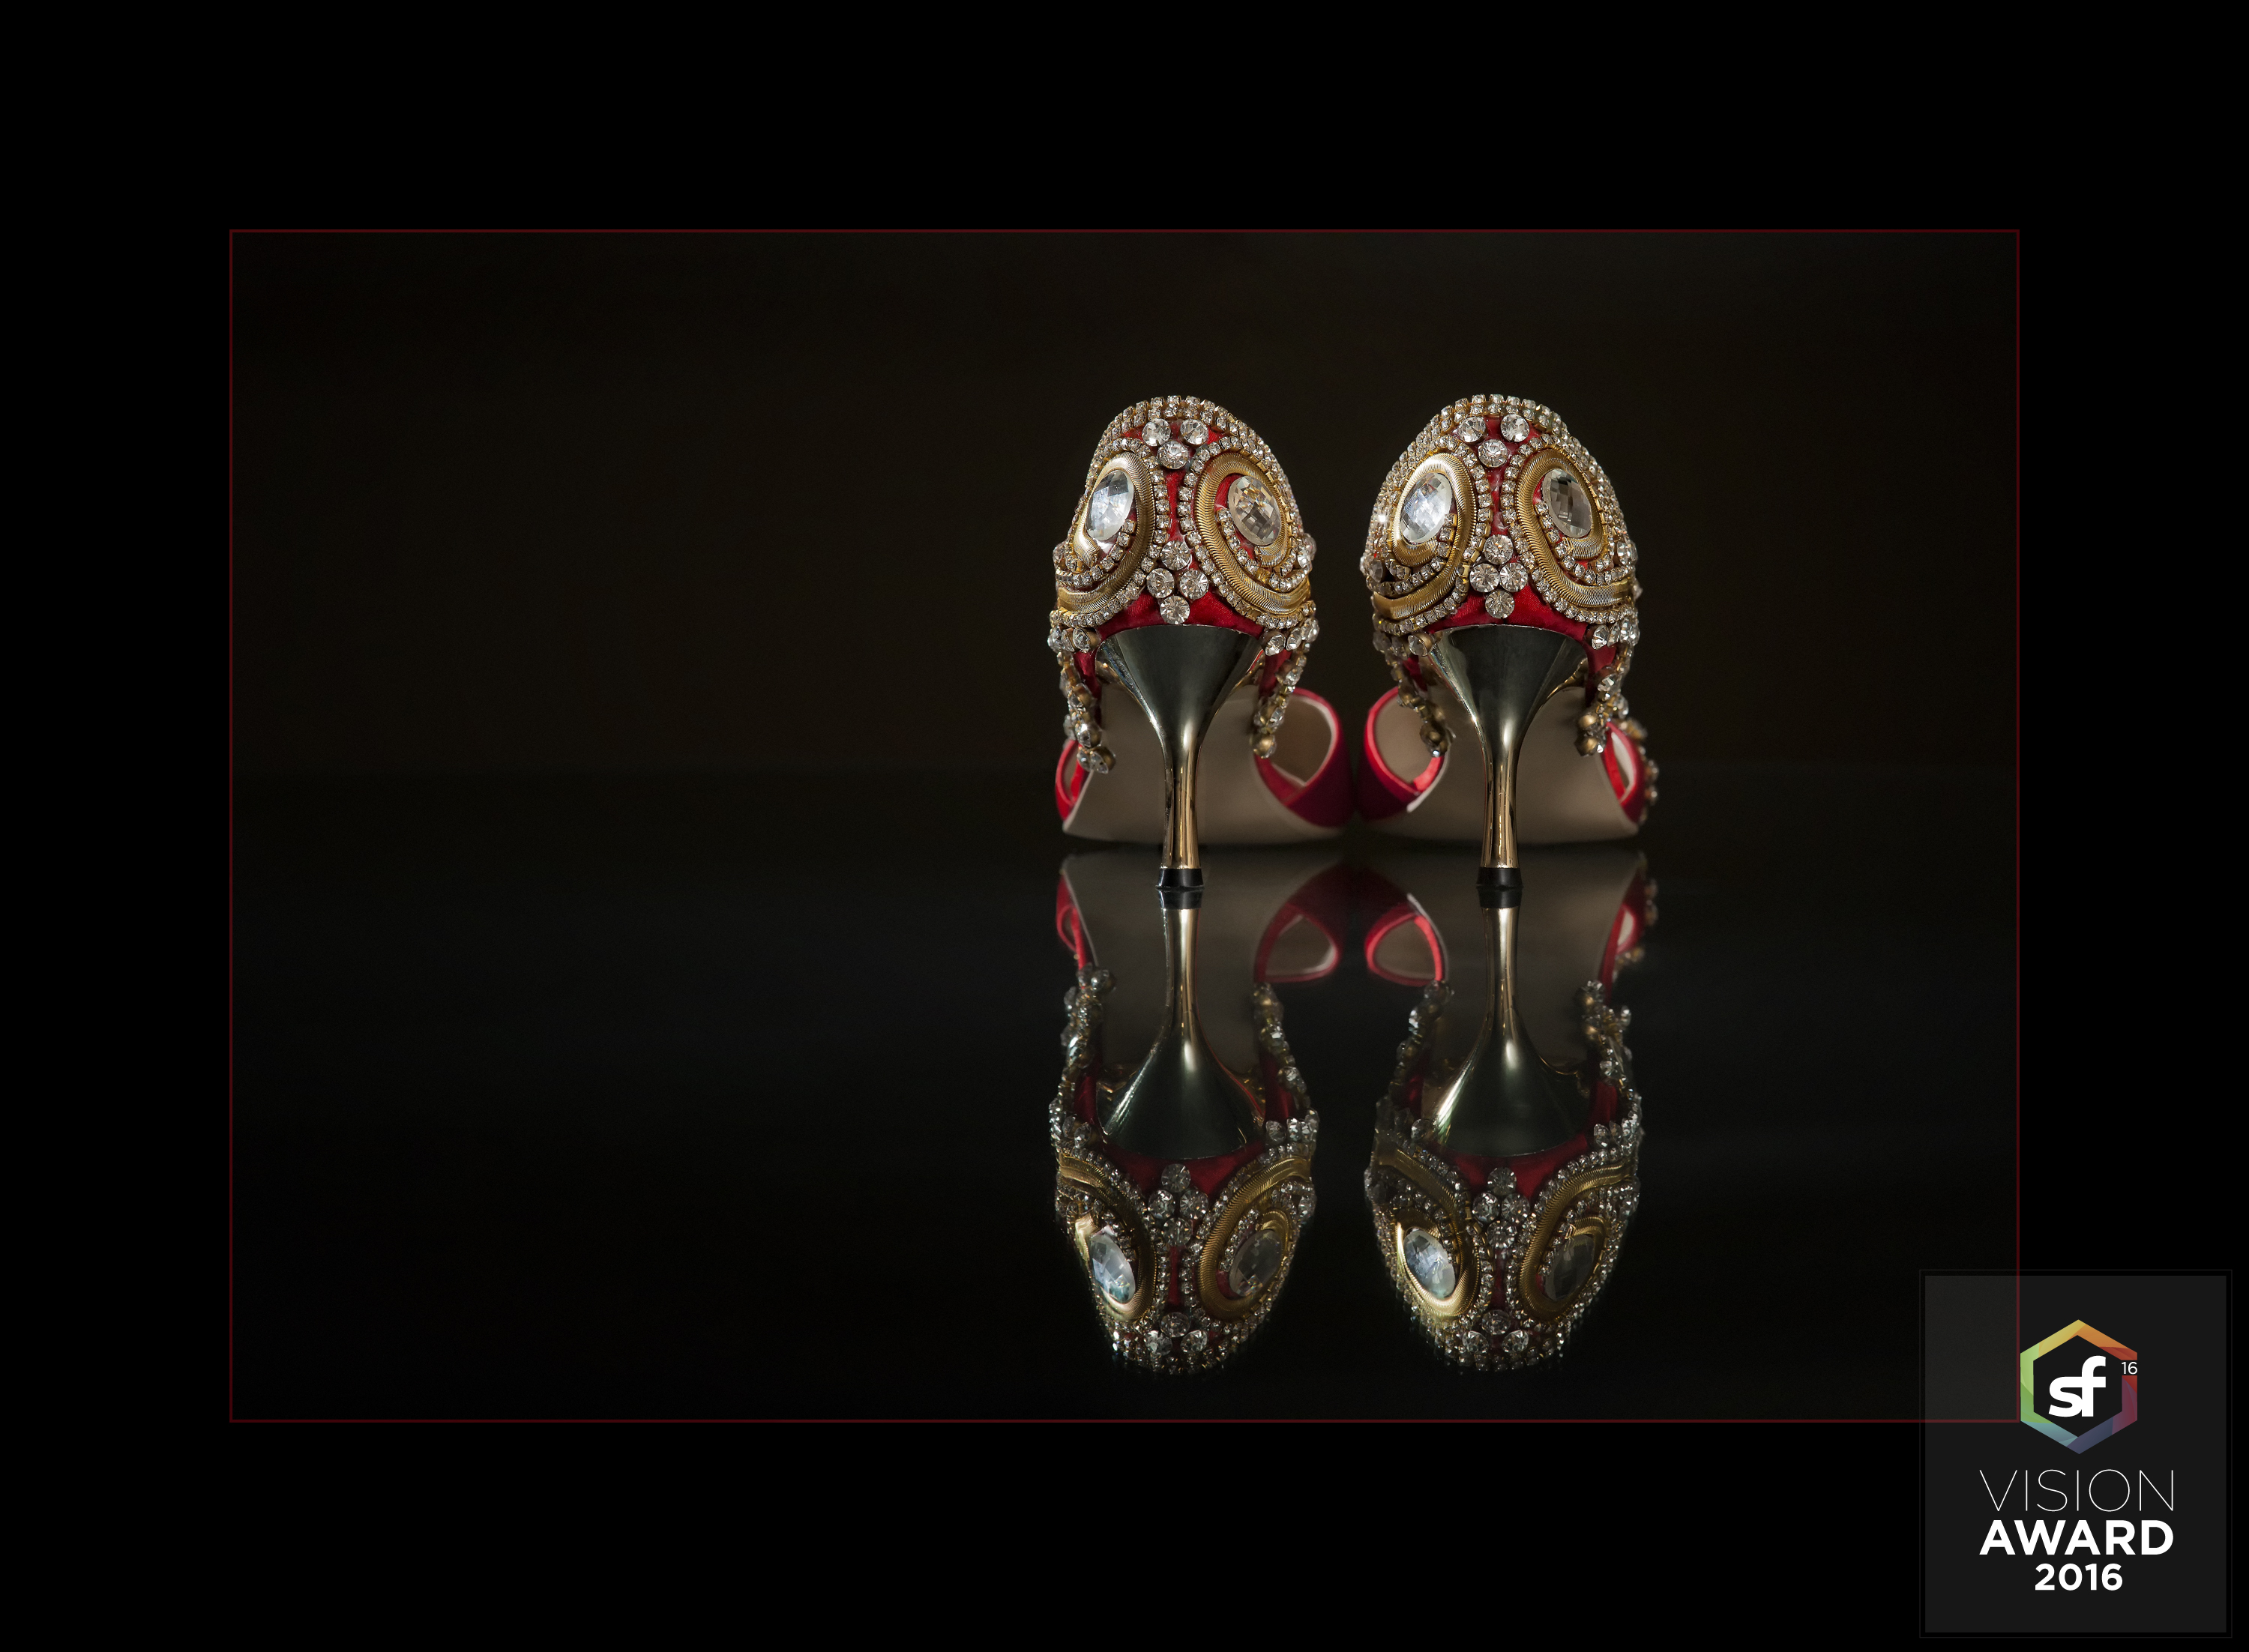 """The Bridal Shoes of Mrs. Patel"" Photographer: Lori Unruh Score: 86 Award: First Place, Wedding Details"